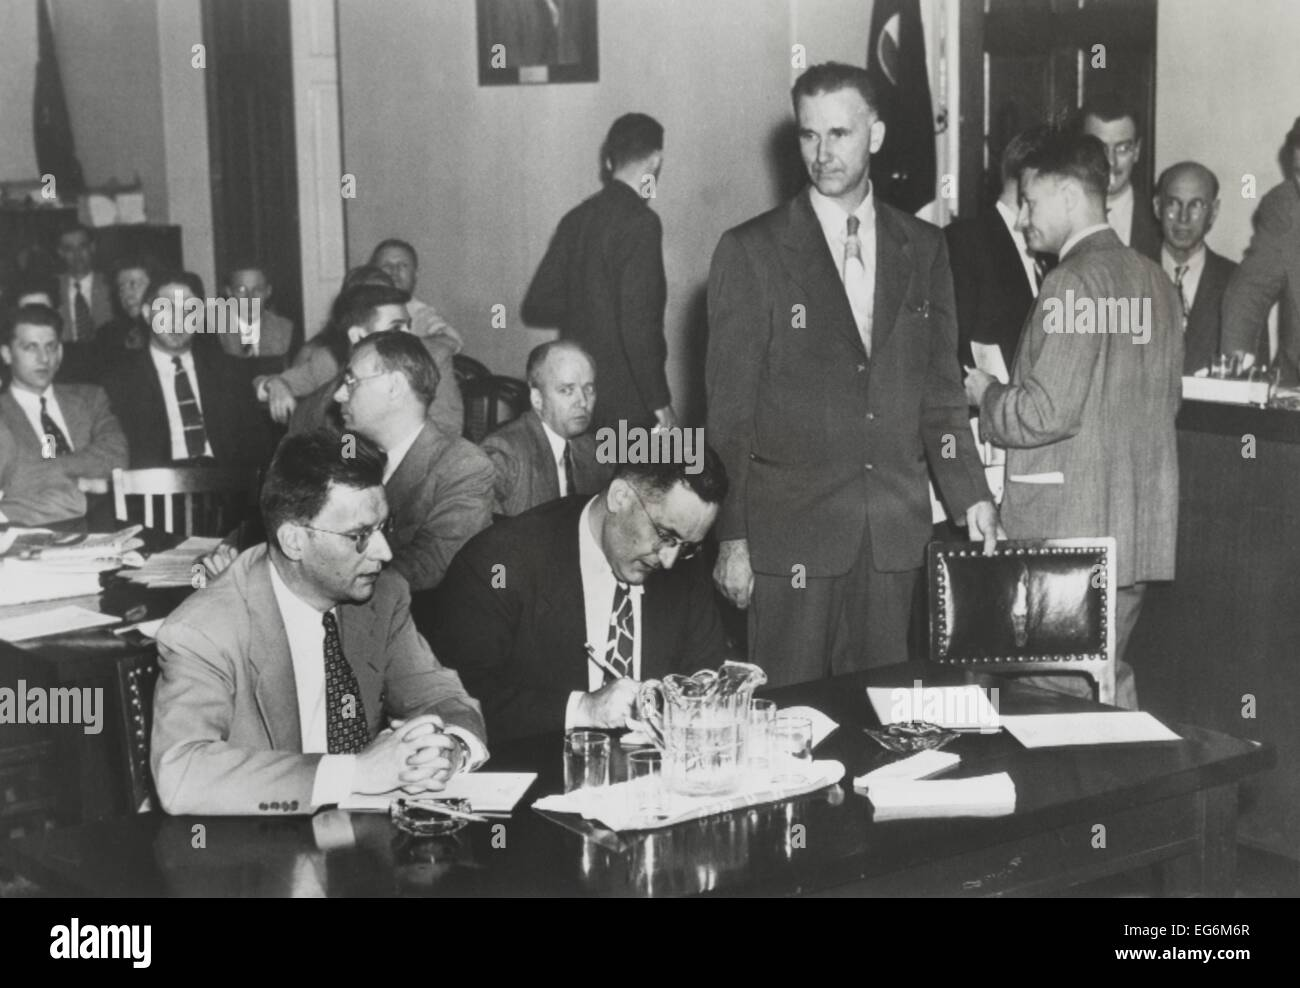 Paul Crouch (standing), an ex-Communist, testified against Clarence Hiskey (left). Hiskey was wartime atomic scientist,Stock Photo